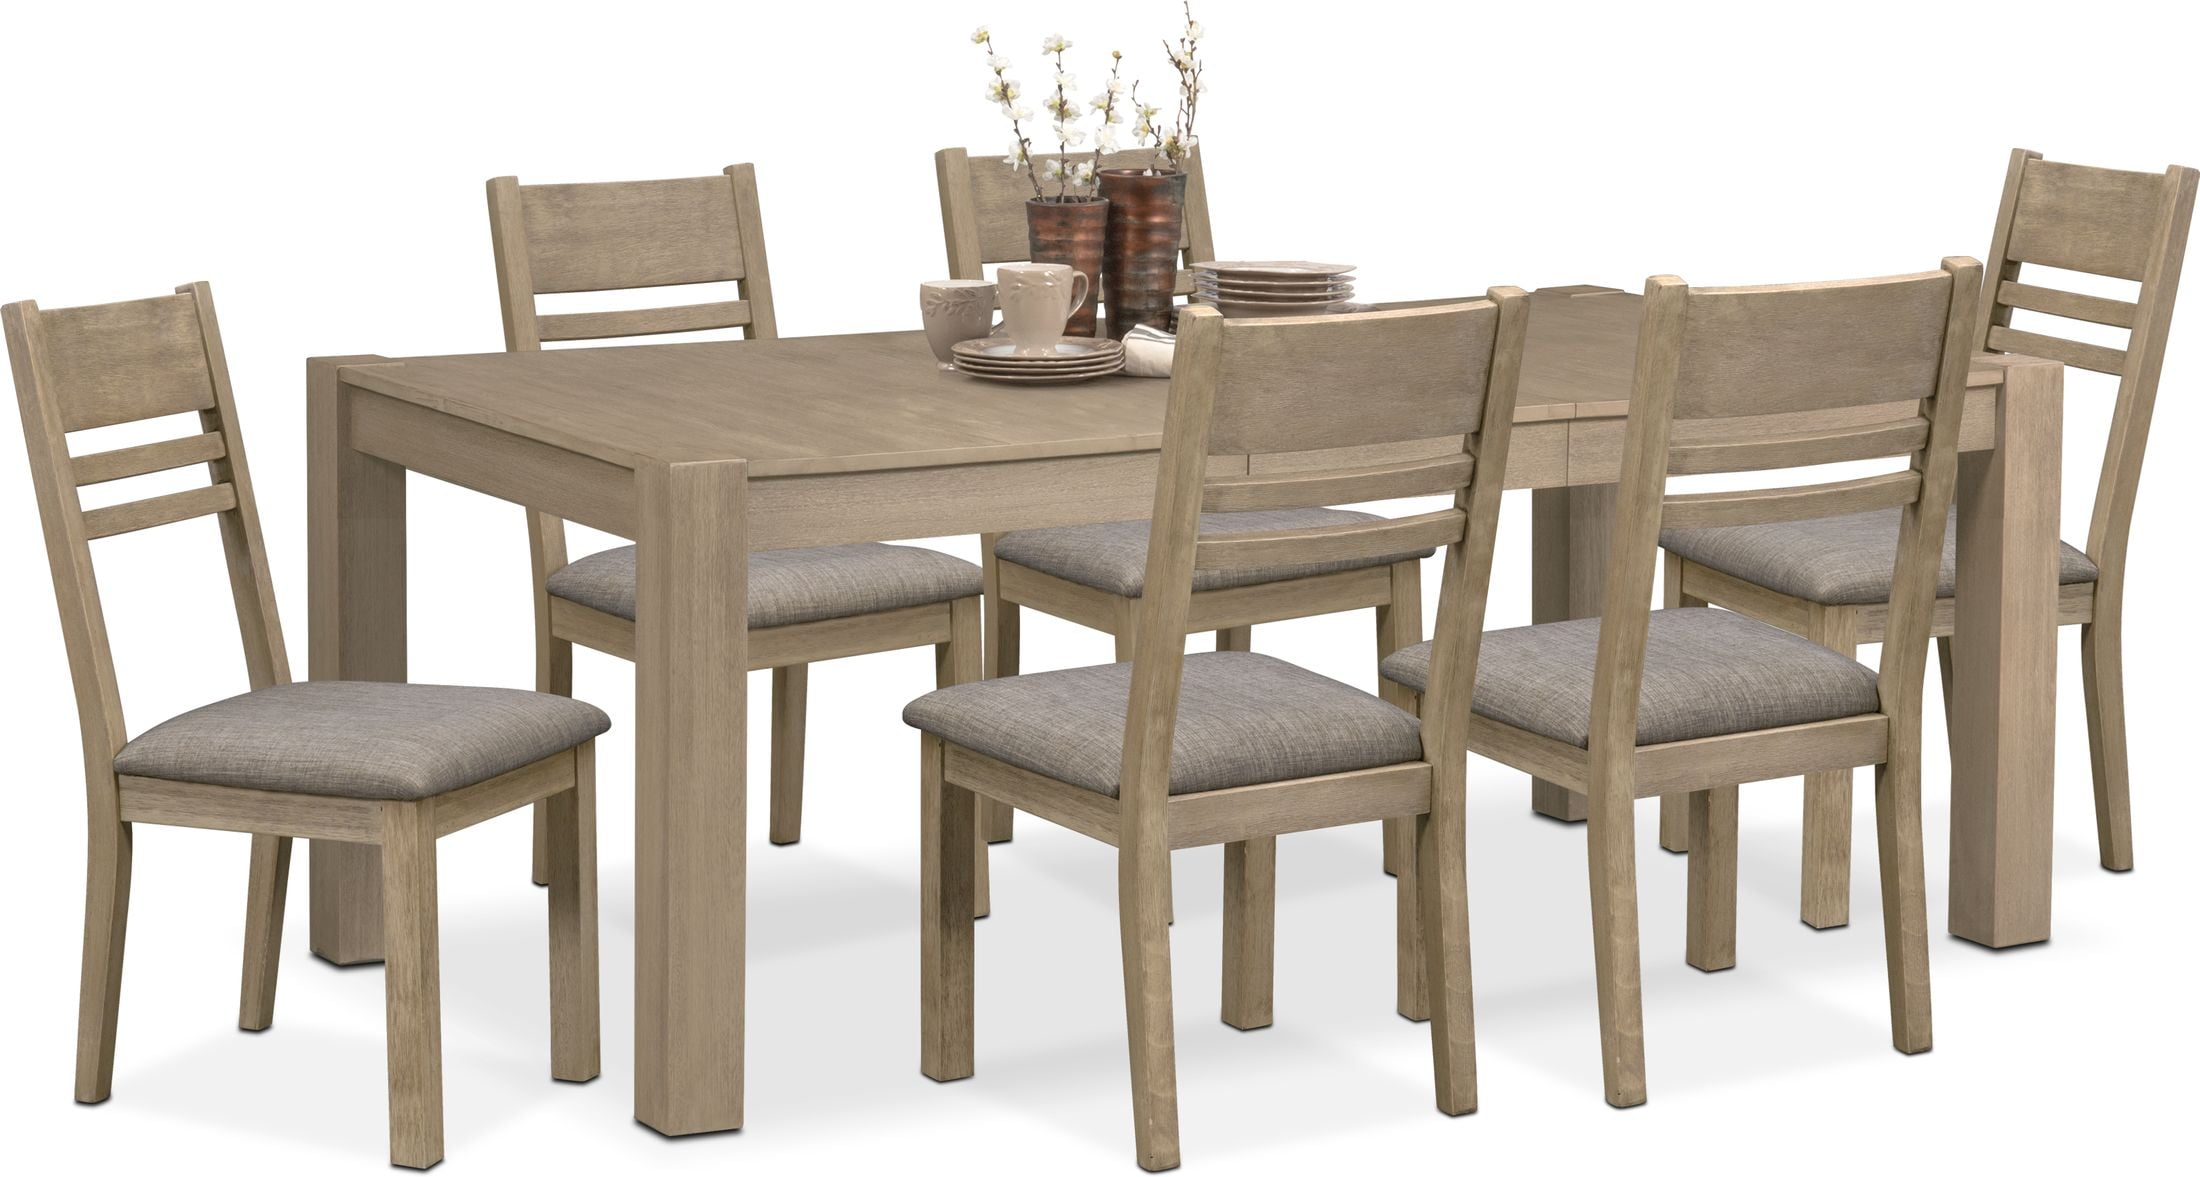 Tribeca Dining Table And 6 Dining Chairs Value City Furniture